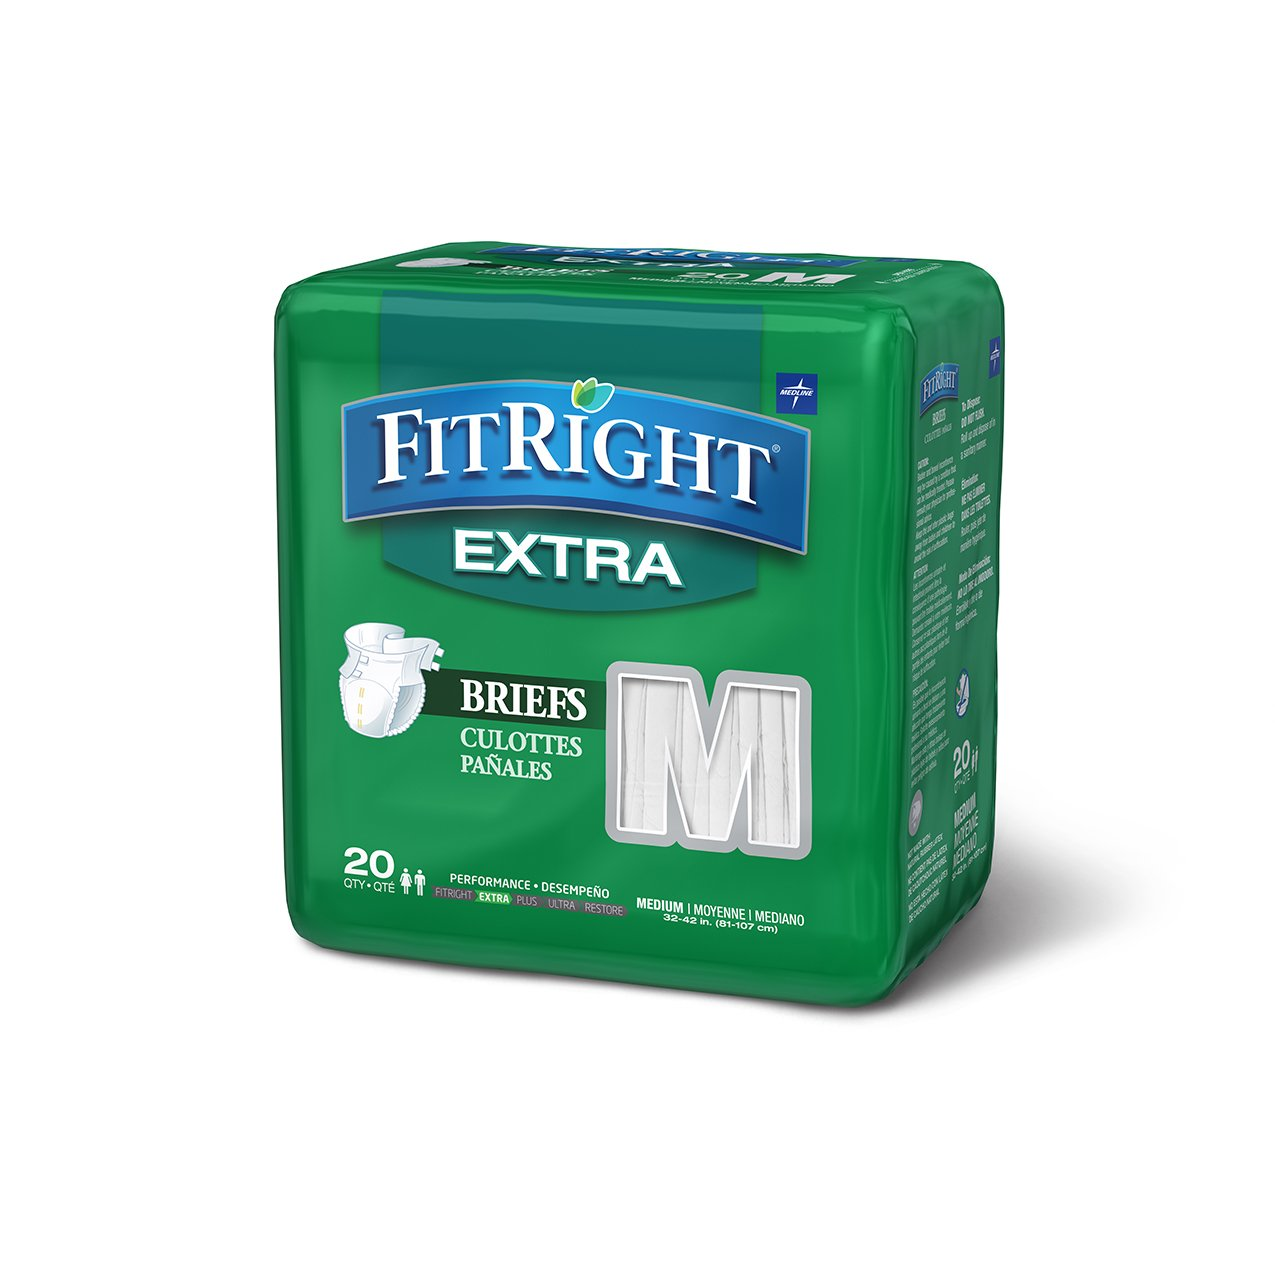 FitRight Extra Adult Briefs with Tabs, Moderate Absorbency, Medium, 32''-42'', 4 packs of 20 (80 total)